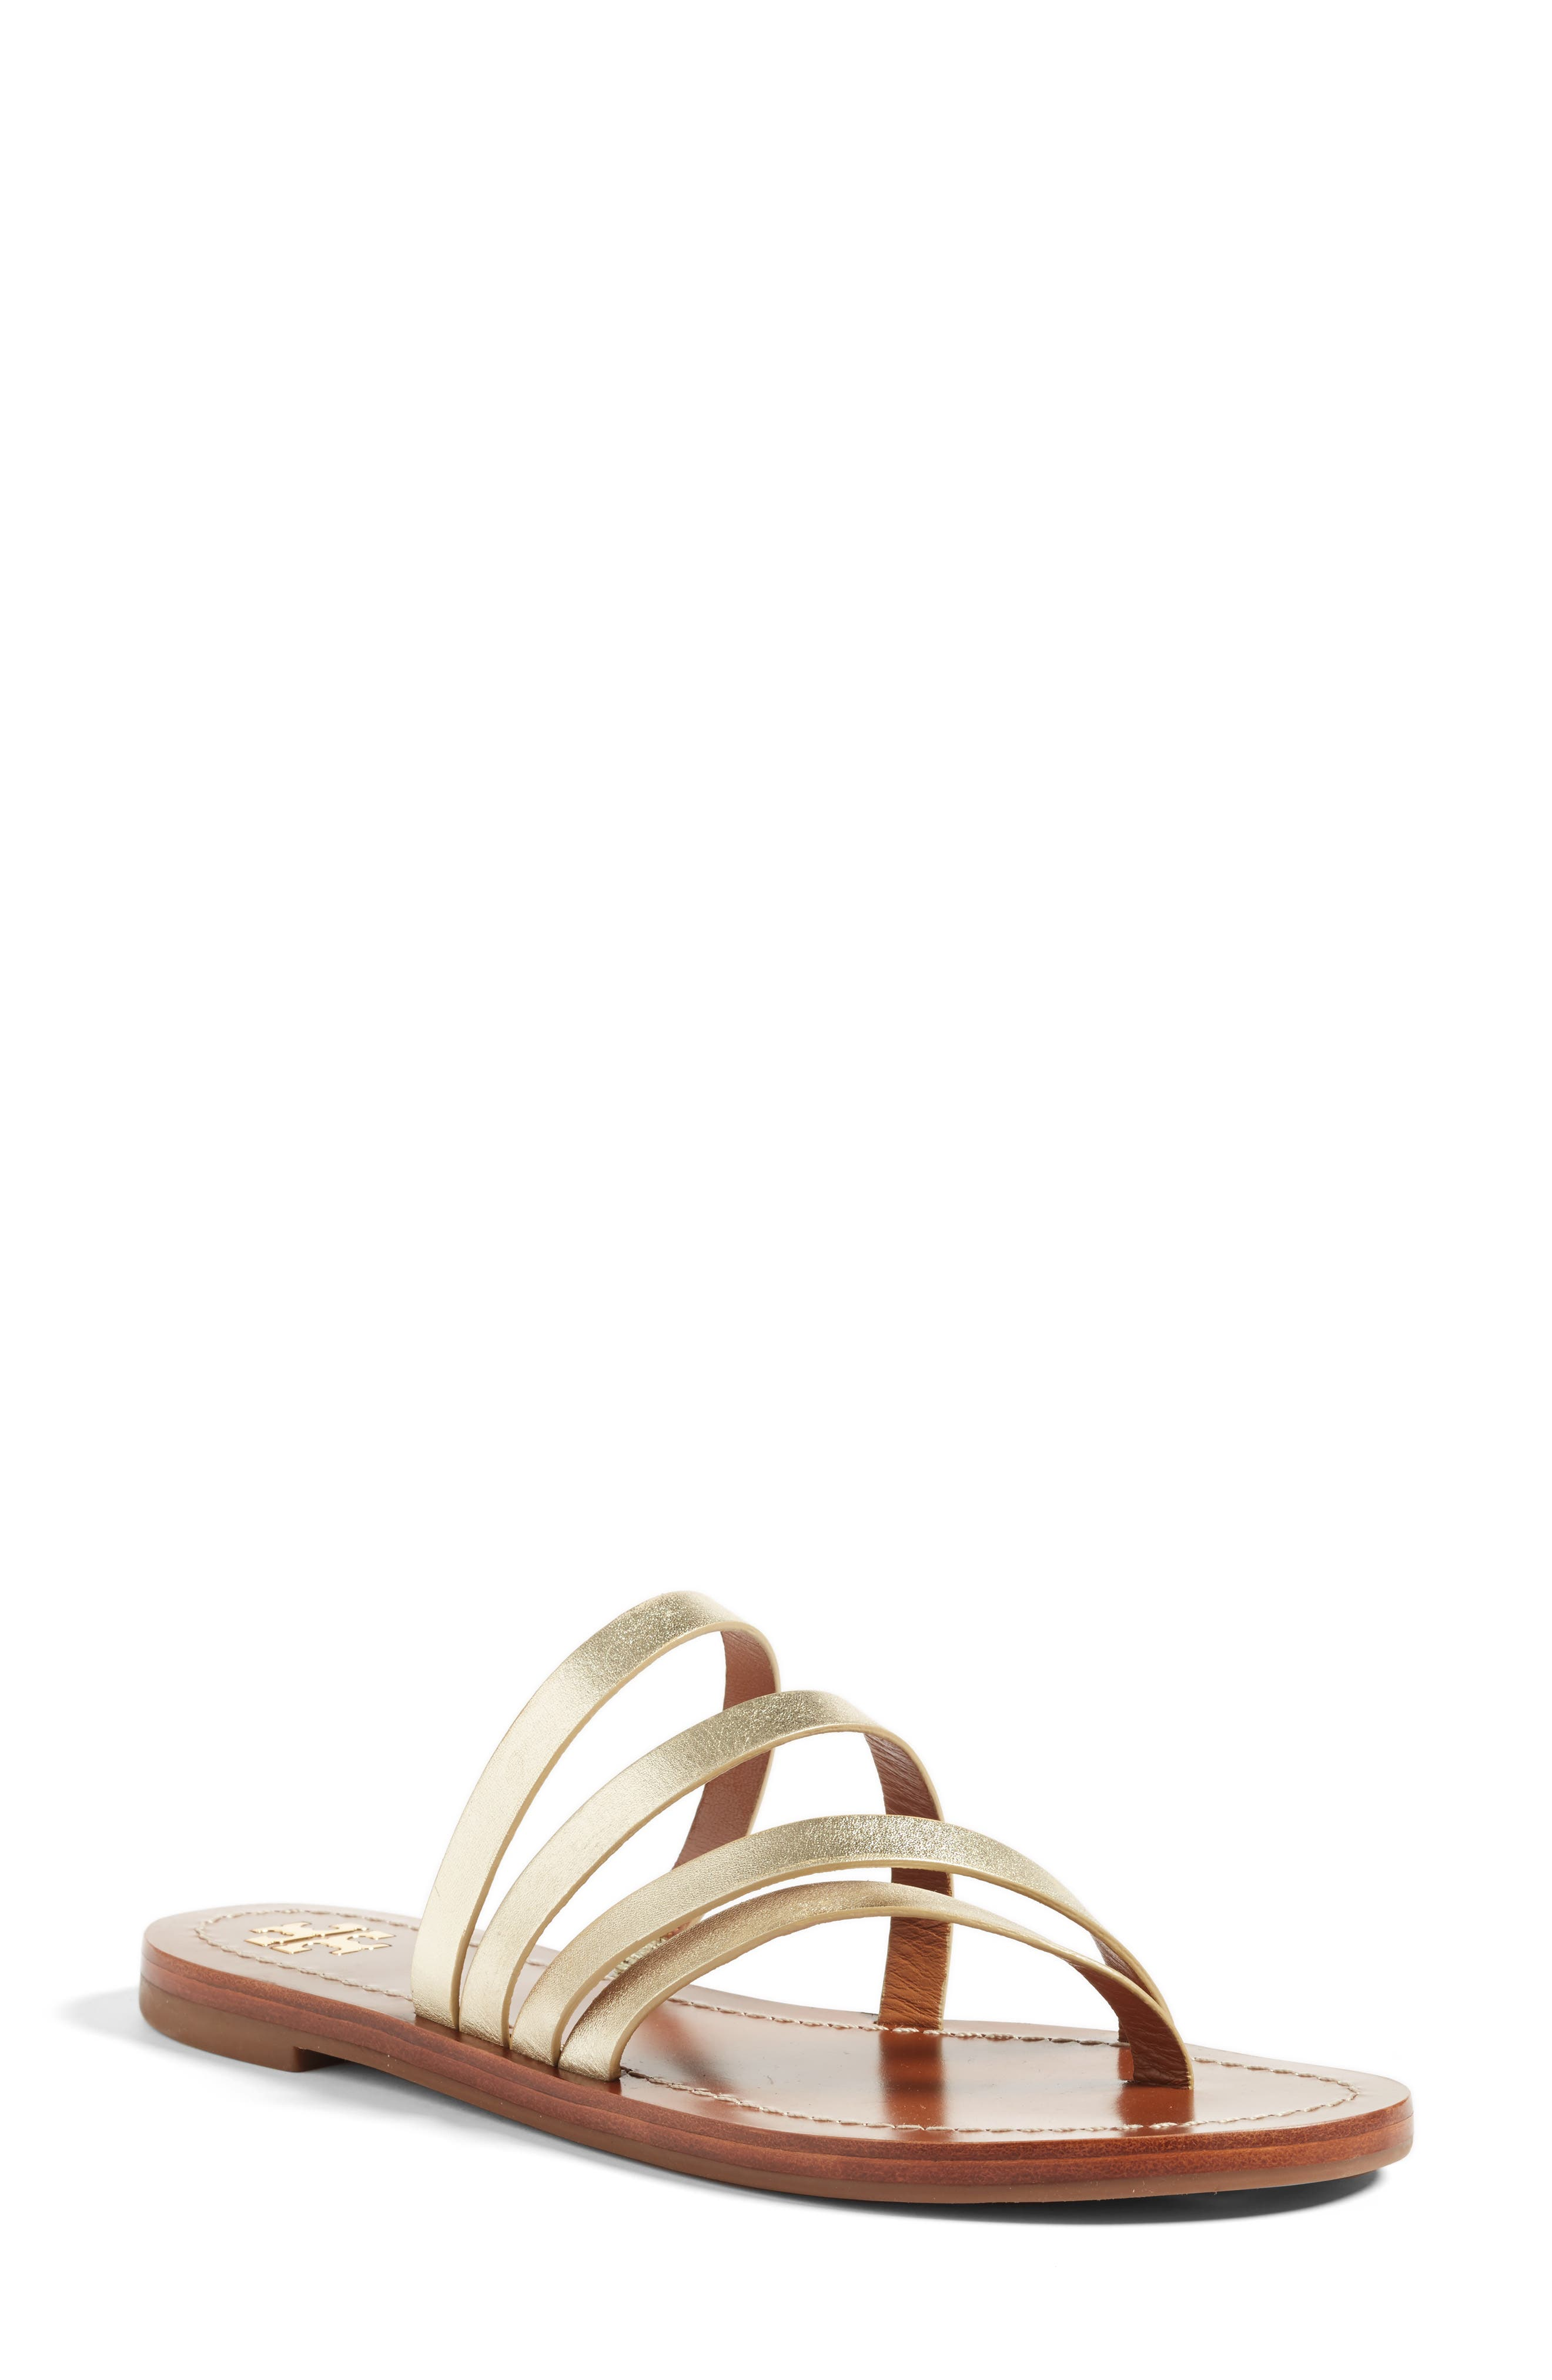 Tory Burch Patos Sandal (Women)